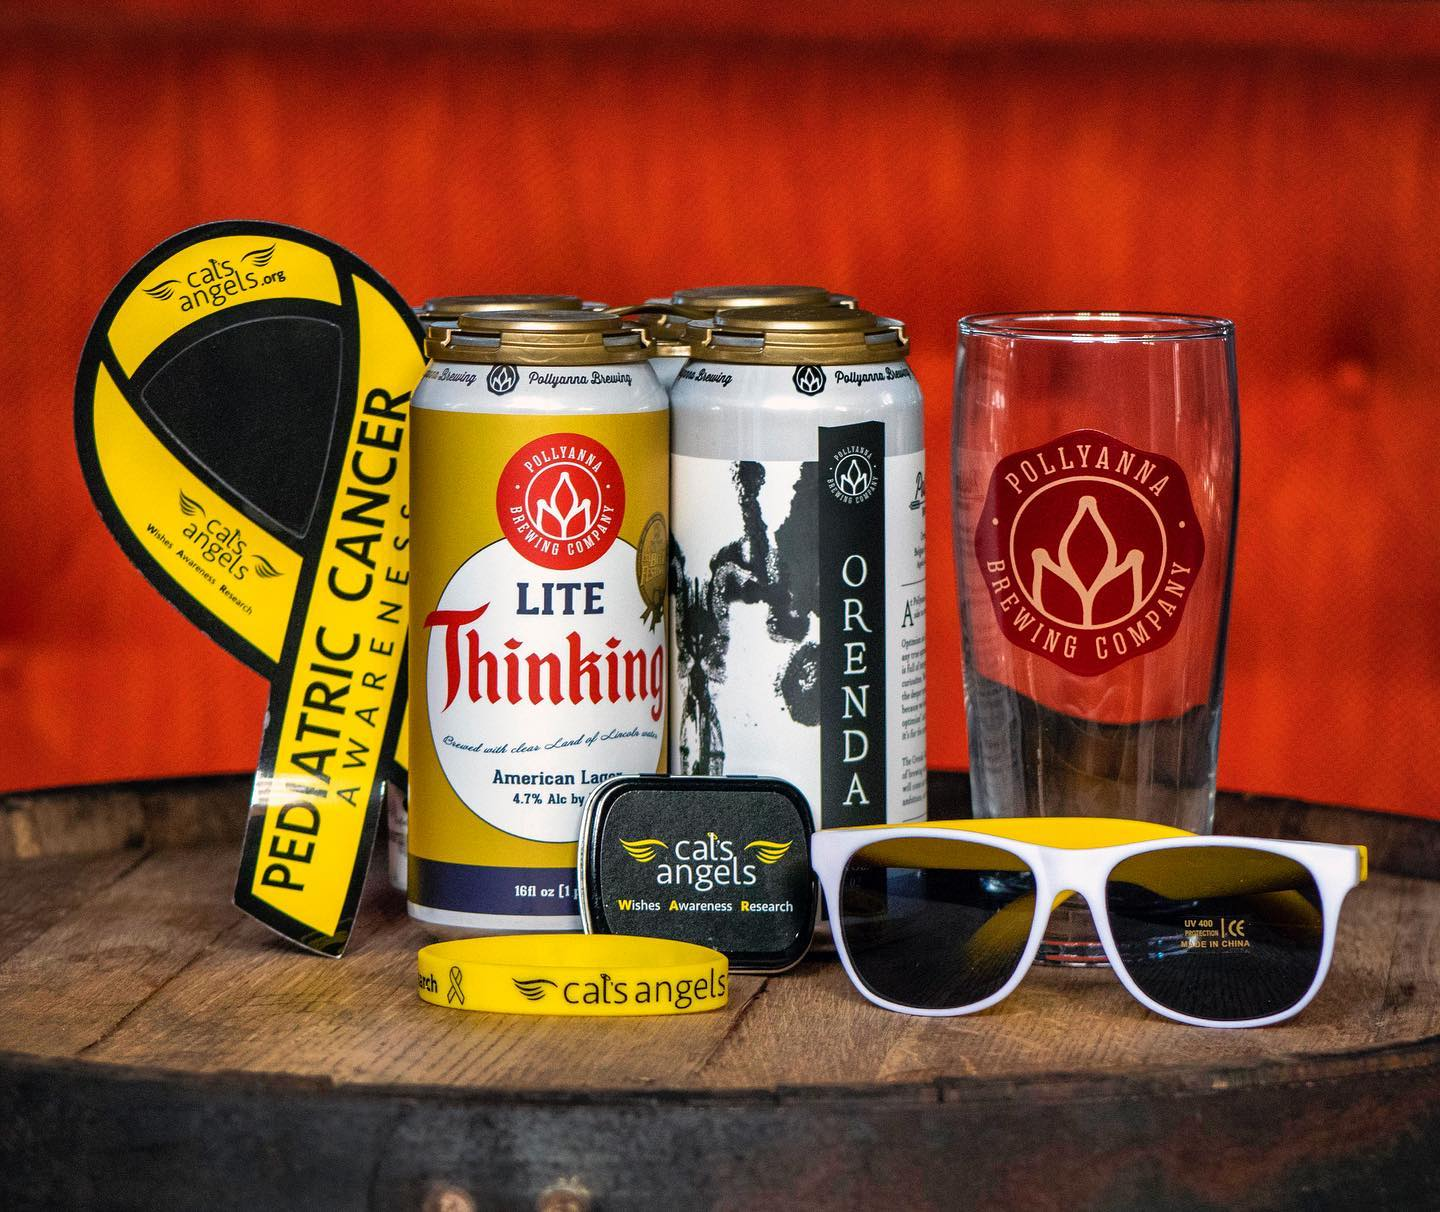 Pollyanna Beer Cans, Pollyanna Beer Glass, Pediatric Cancer Ribbon, Sunglasses, and bracelet